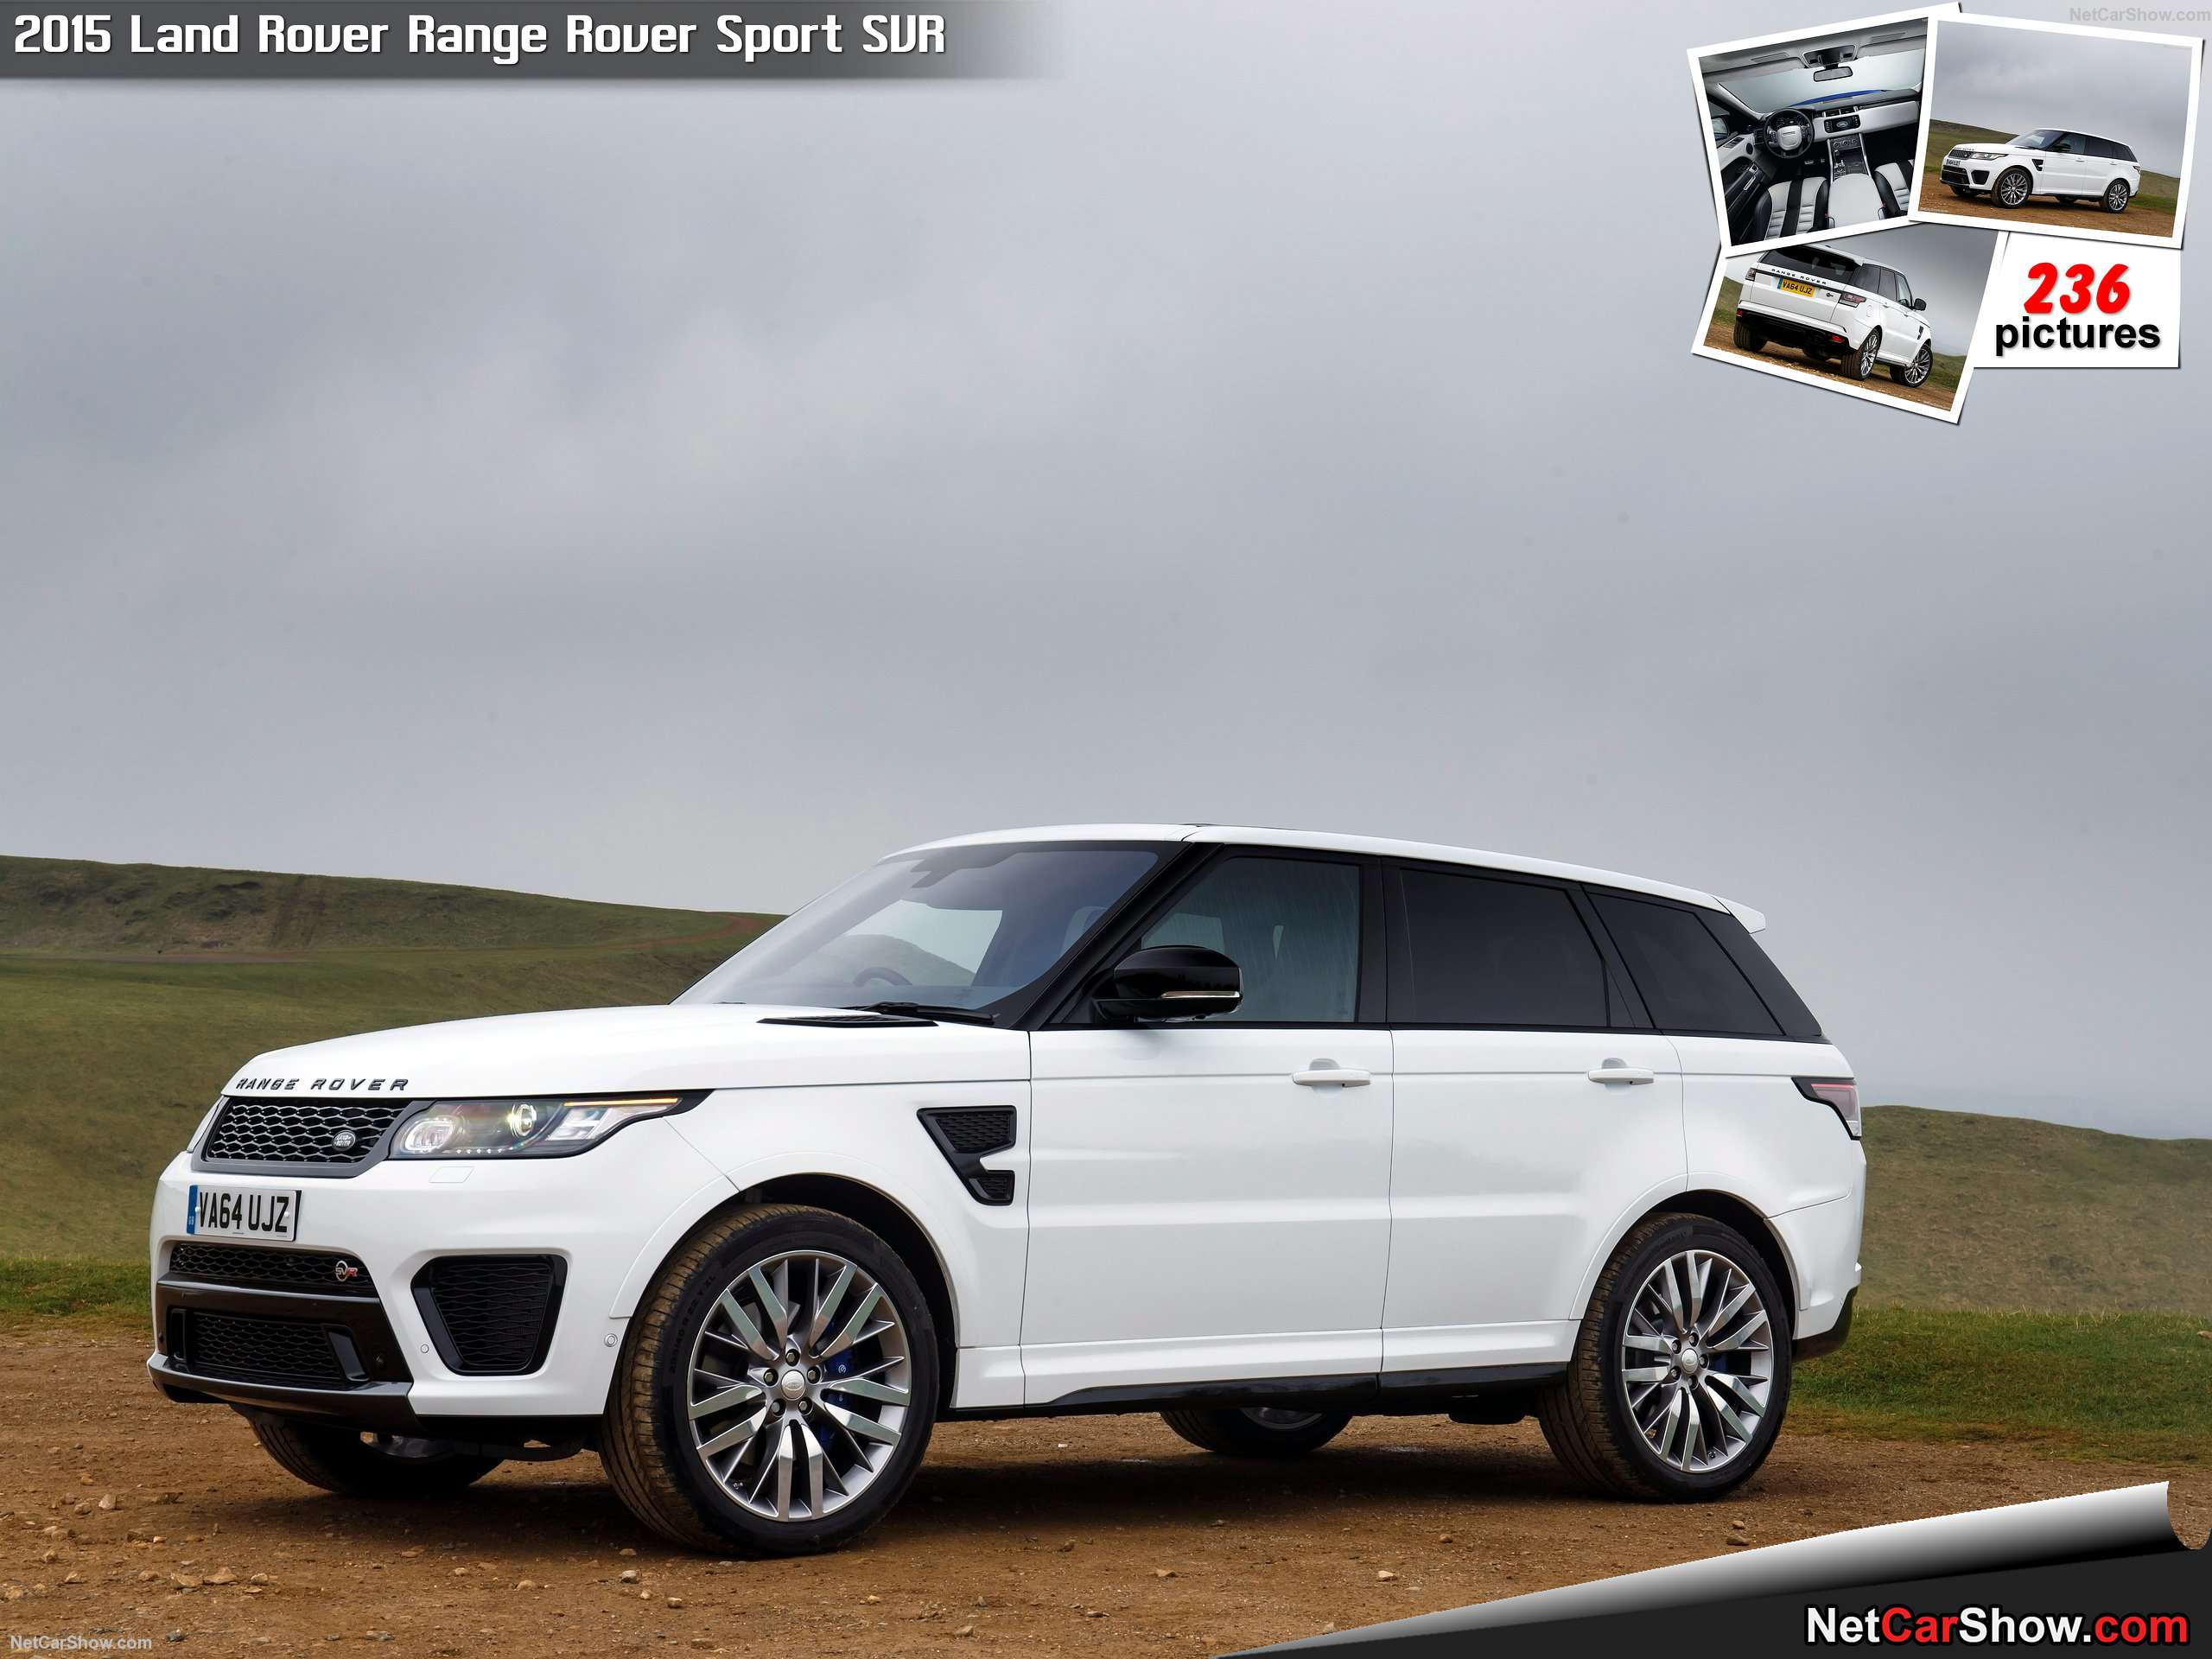 Range Rover Sport Iphone Wallpaper >> Land Rover Range Rover Sport SVR (2015) - pictures - HD Wallpapers